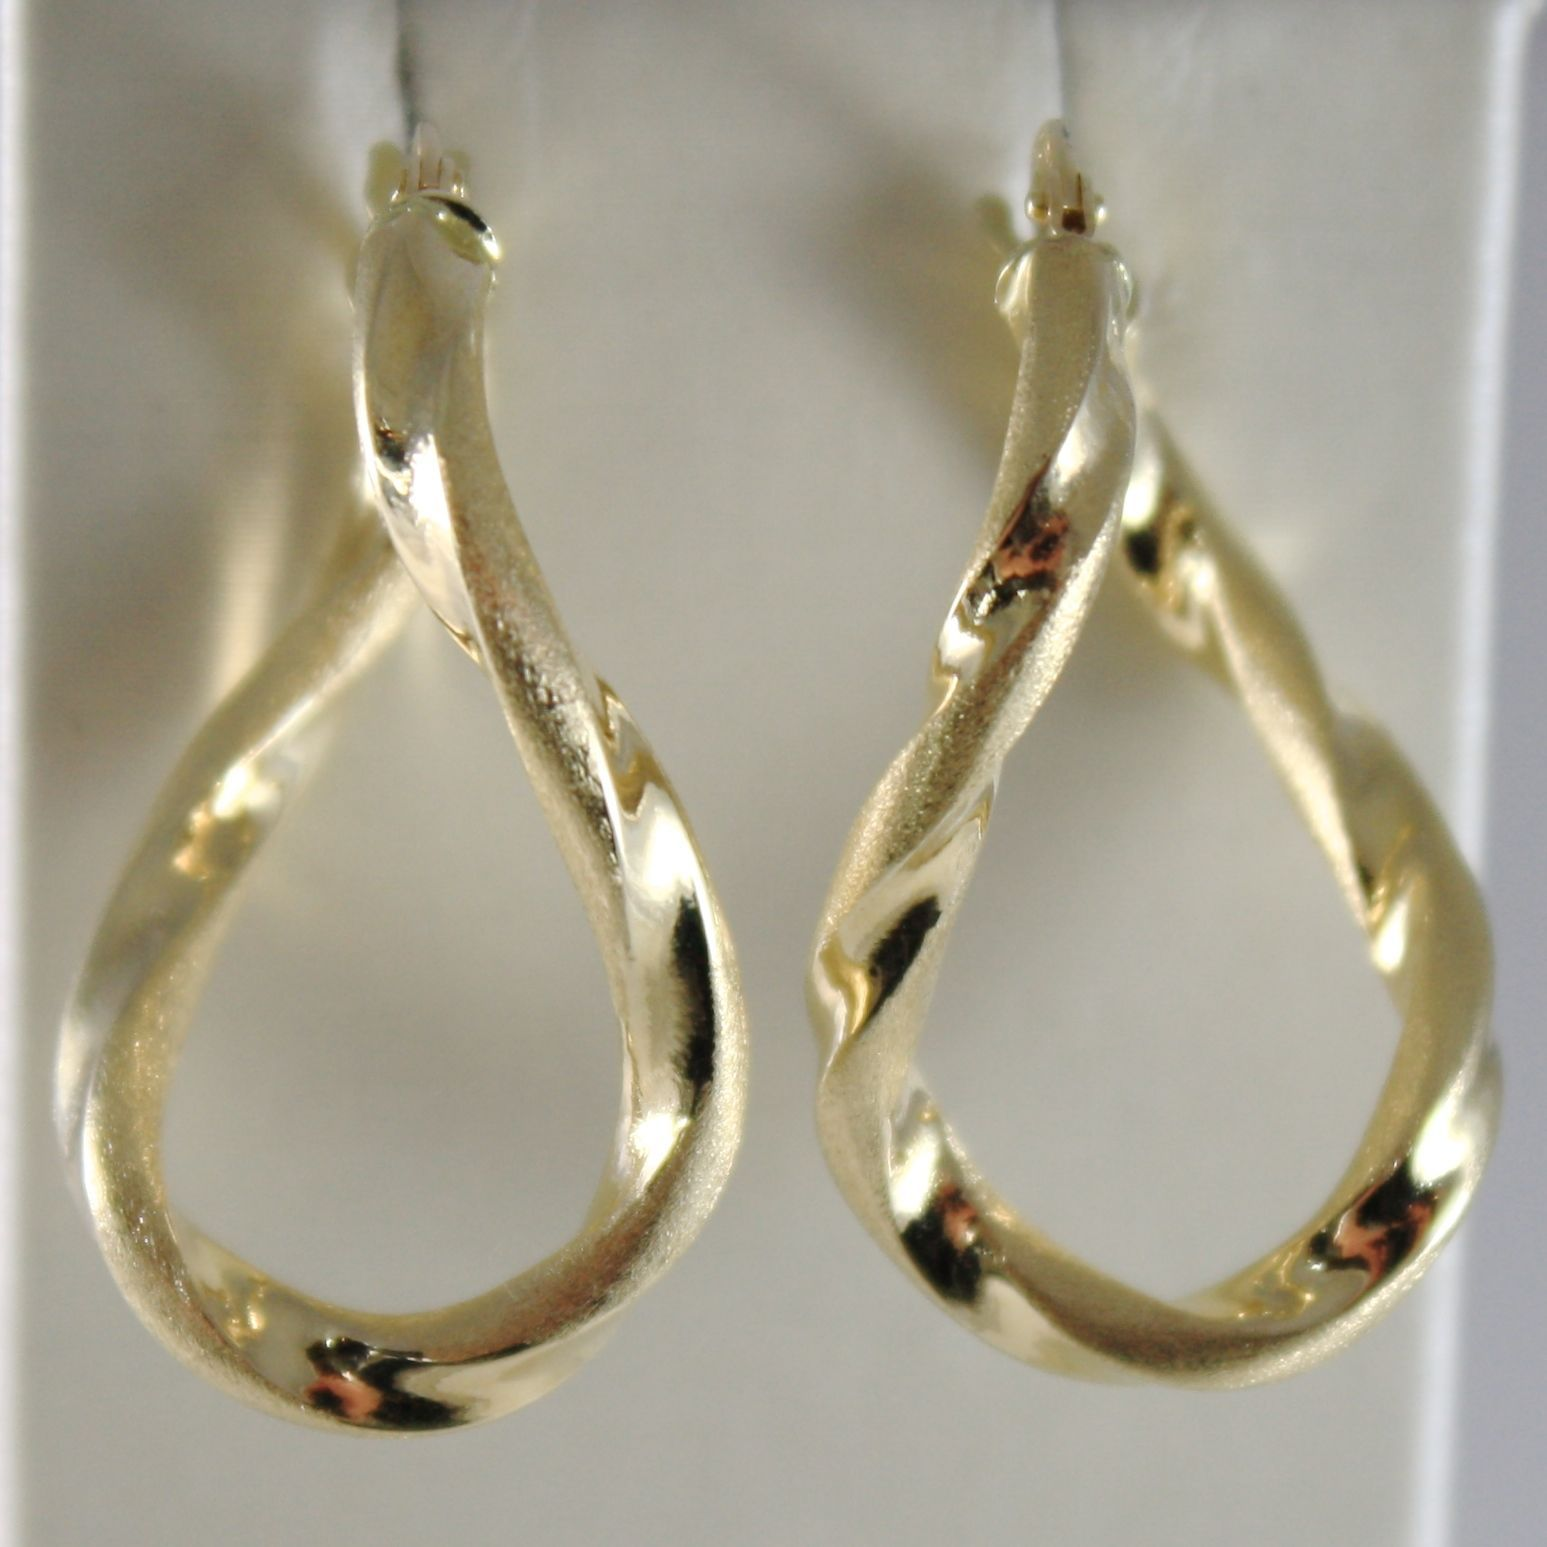 YELLOW GOLD EARRINGS 750 18K CIRCLE, WAVE, TWISTED, SHINY AND SATIN